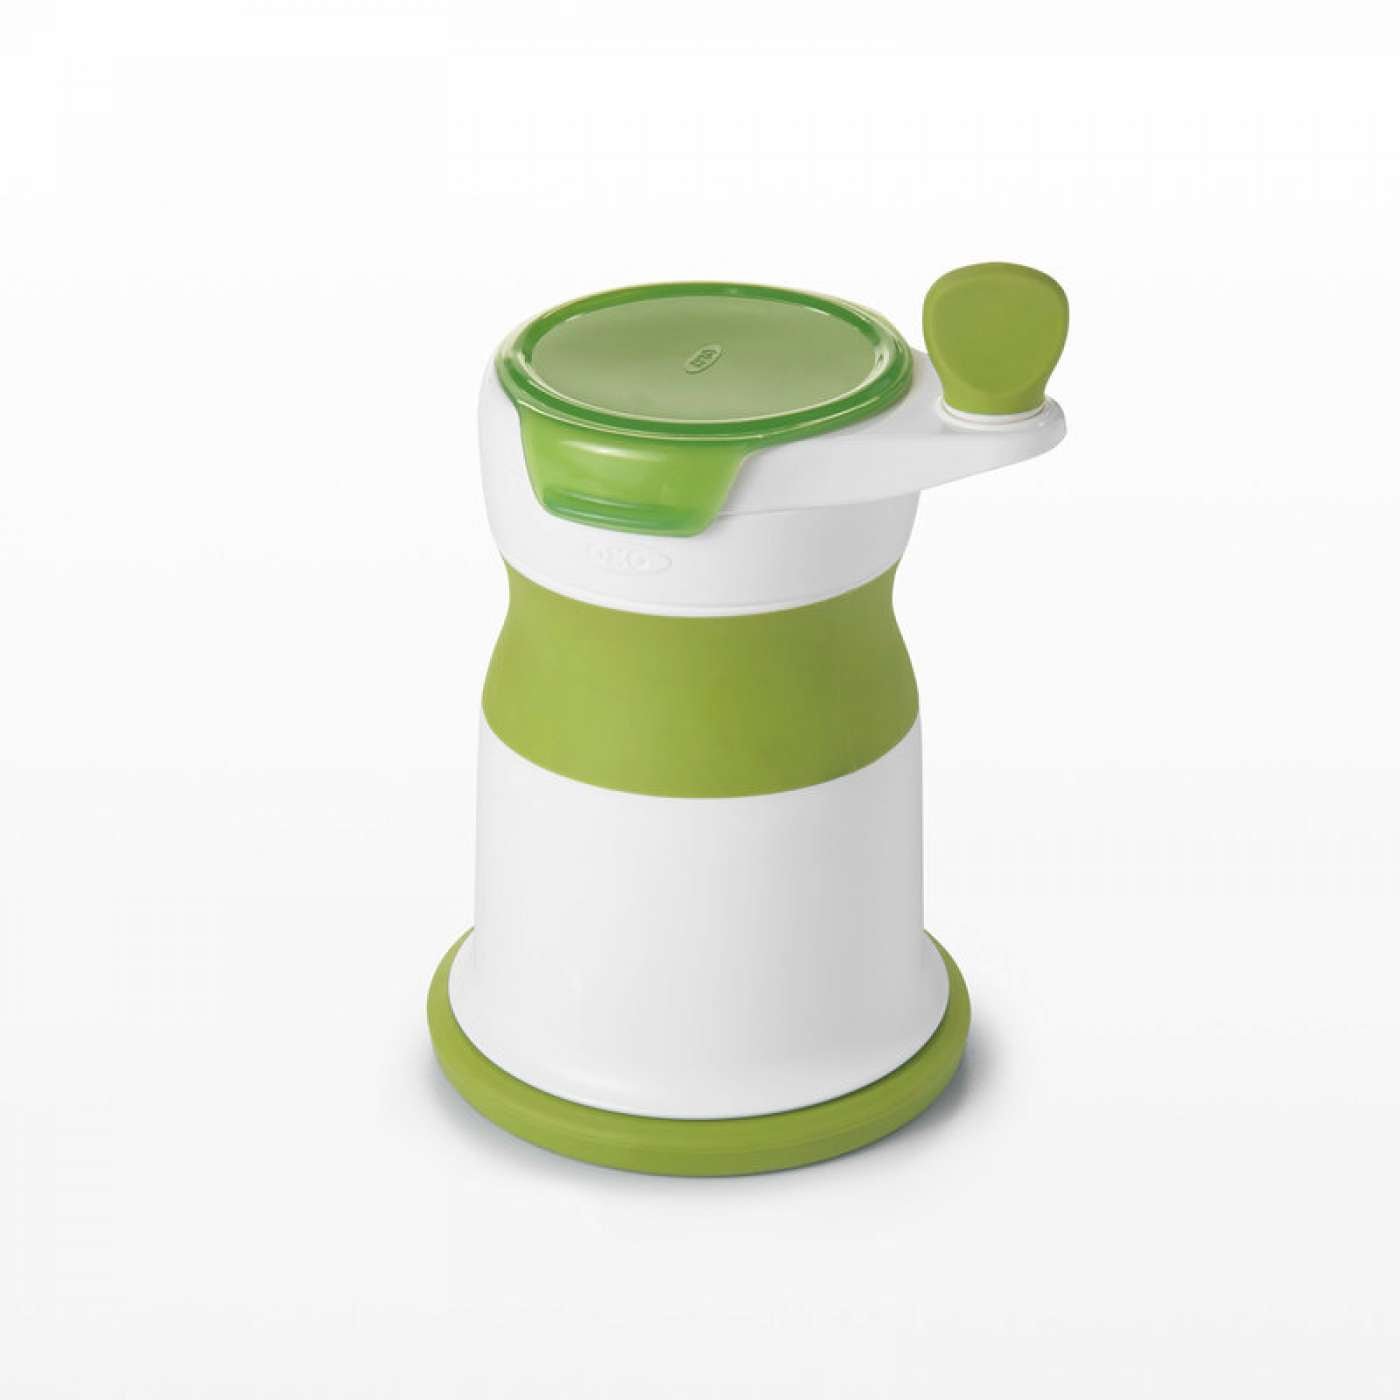 Mash Maker Baby Food Mill w/ Spoon Set